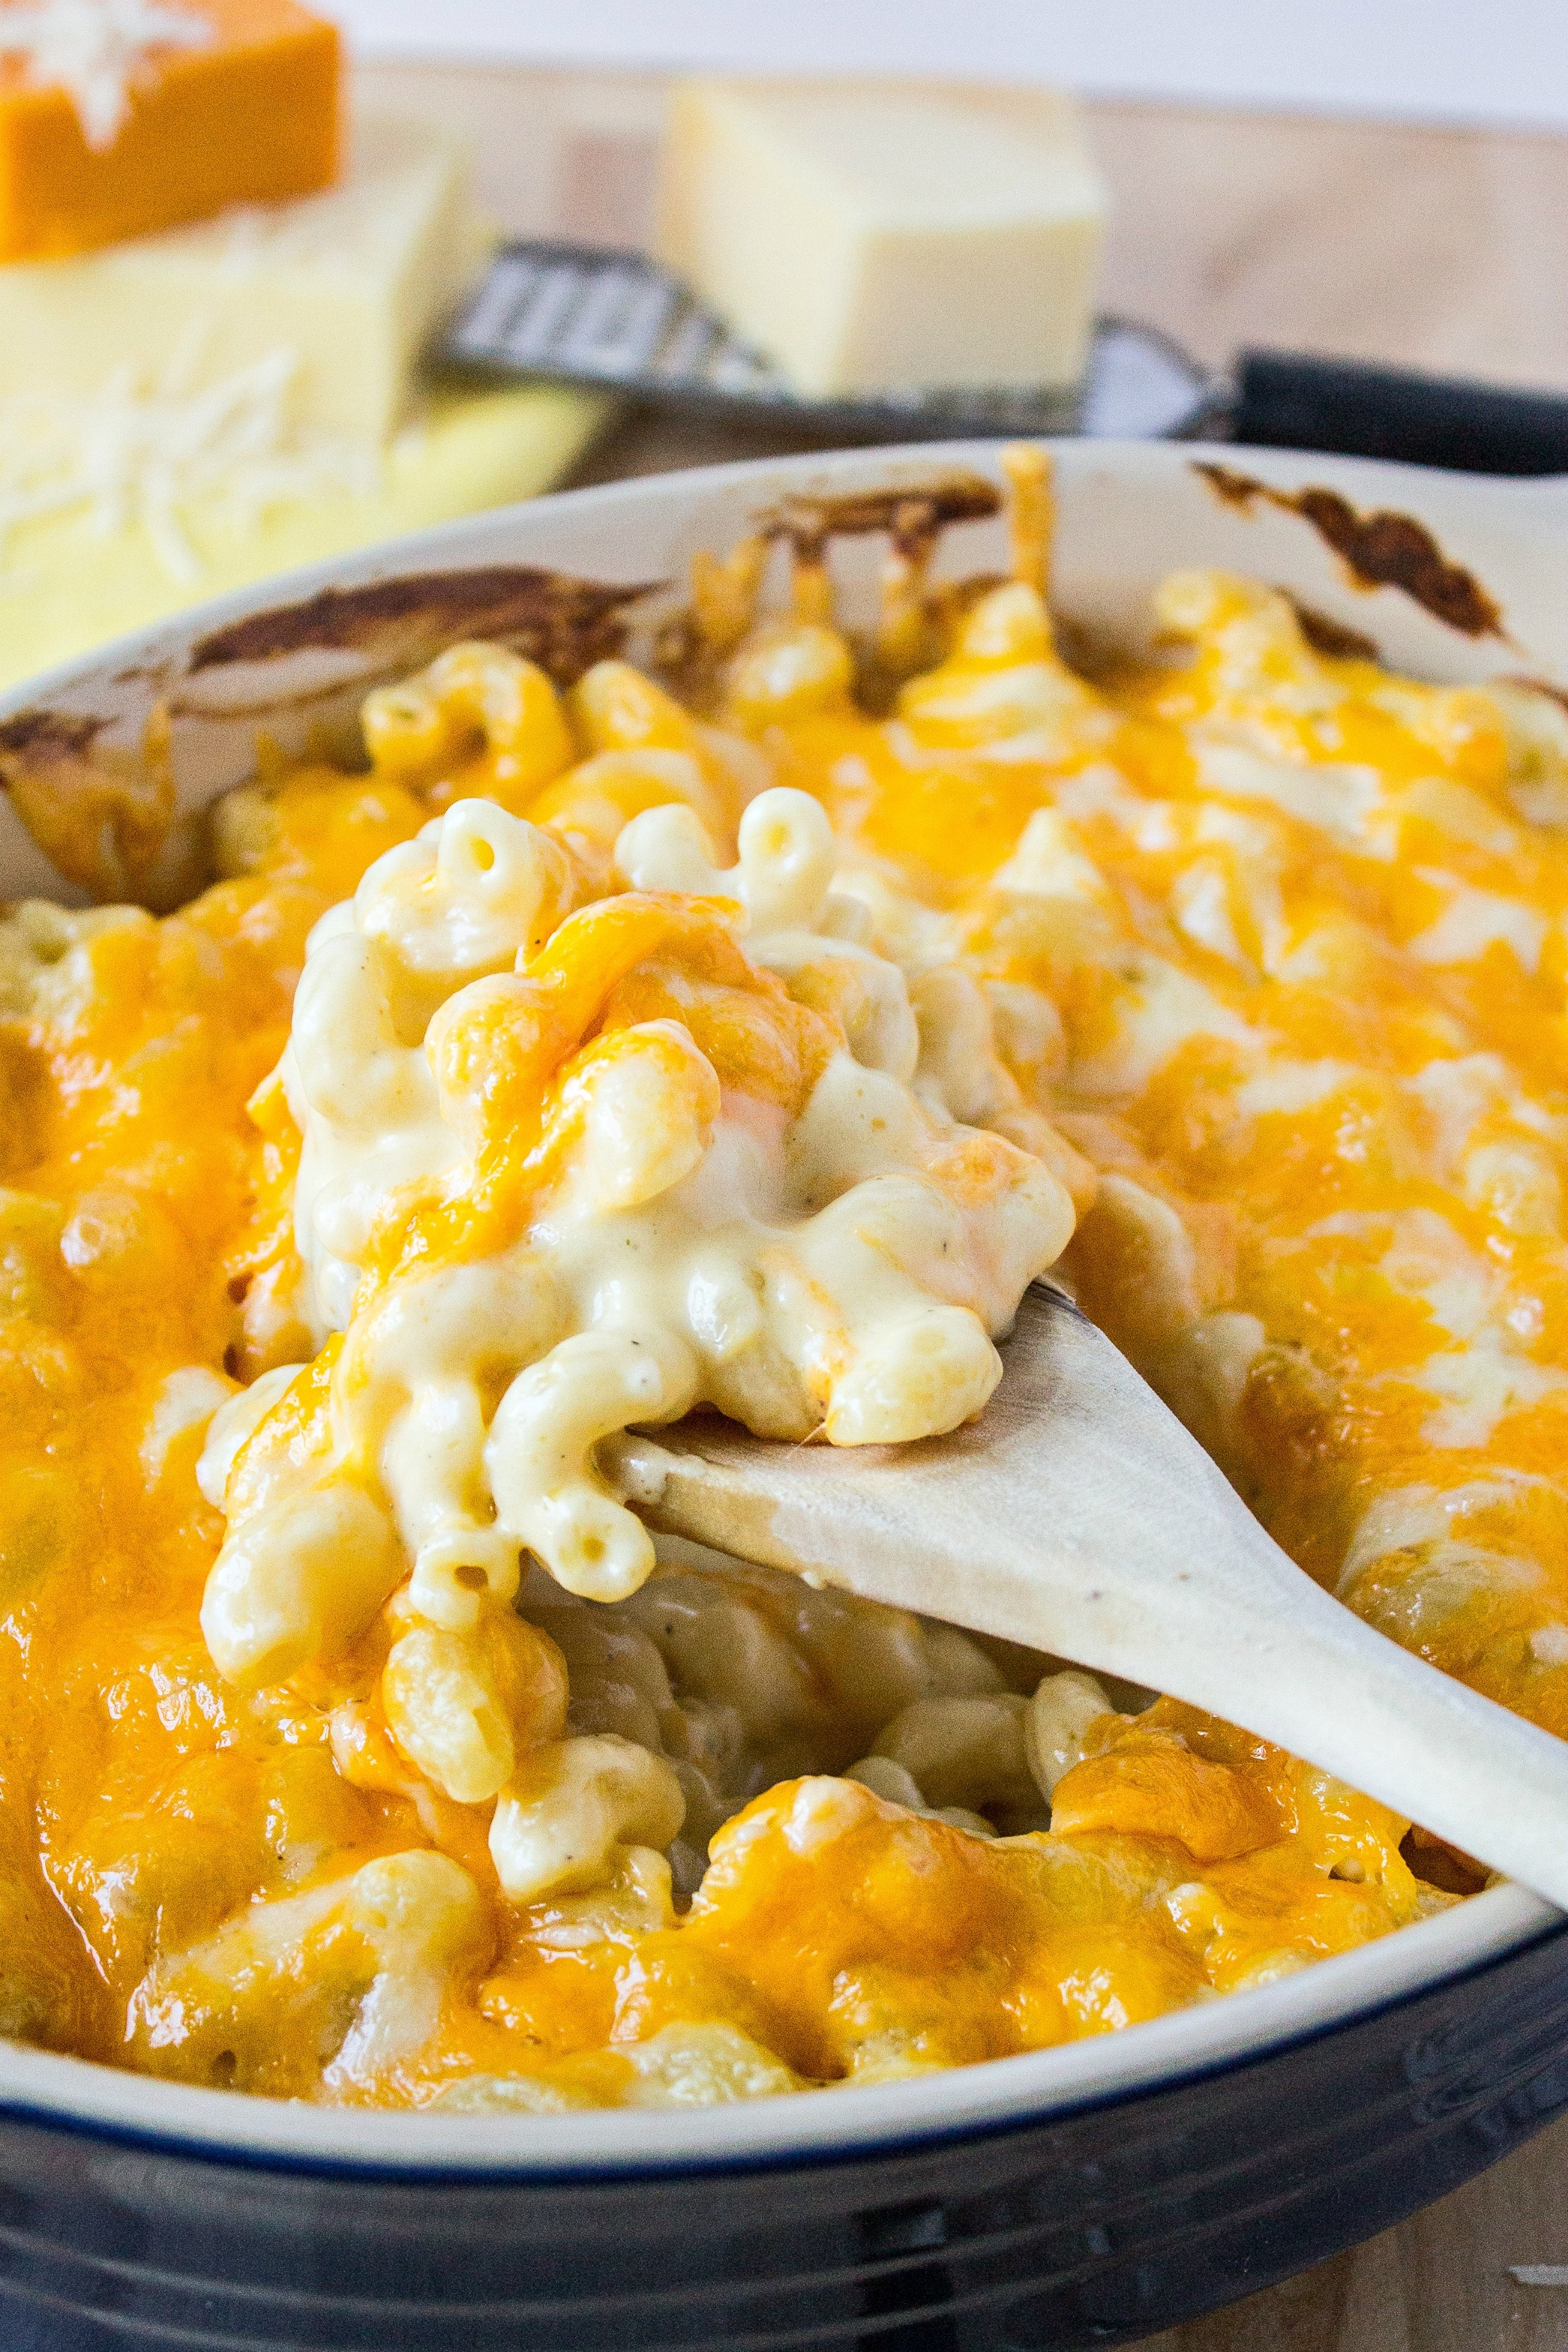 Pan of creamy baked mac and cheese